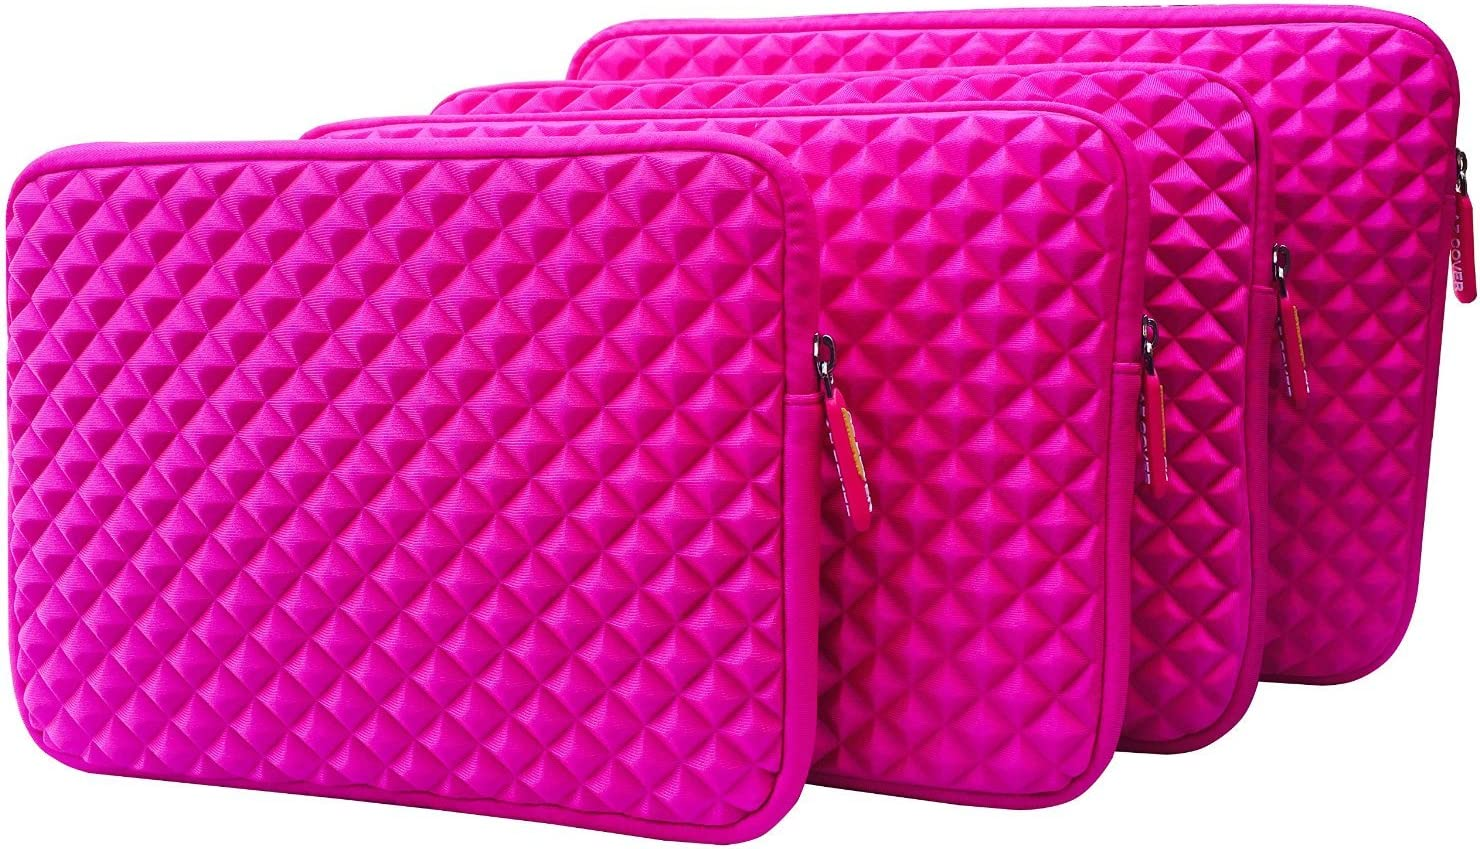 Hot Pink For Toshiba W35DT-A3300 Satellite Click 2-in-1 13-Inch Touch-Screen Laptop Ultimate AZ-Cover 13-Inch Case Simplicity /& Stylish Diamond Foam Shock-Resistant Neoprene Sleeve